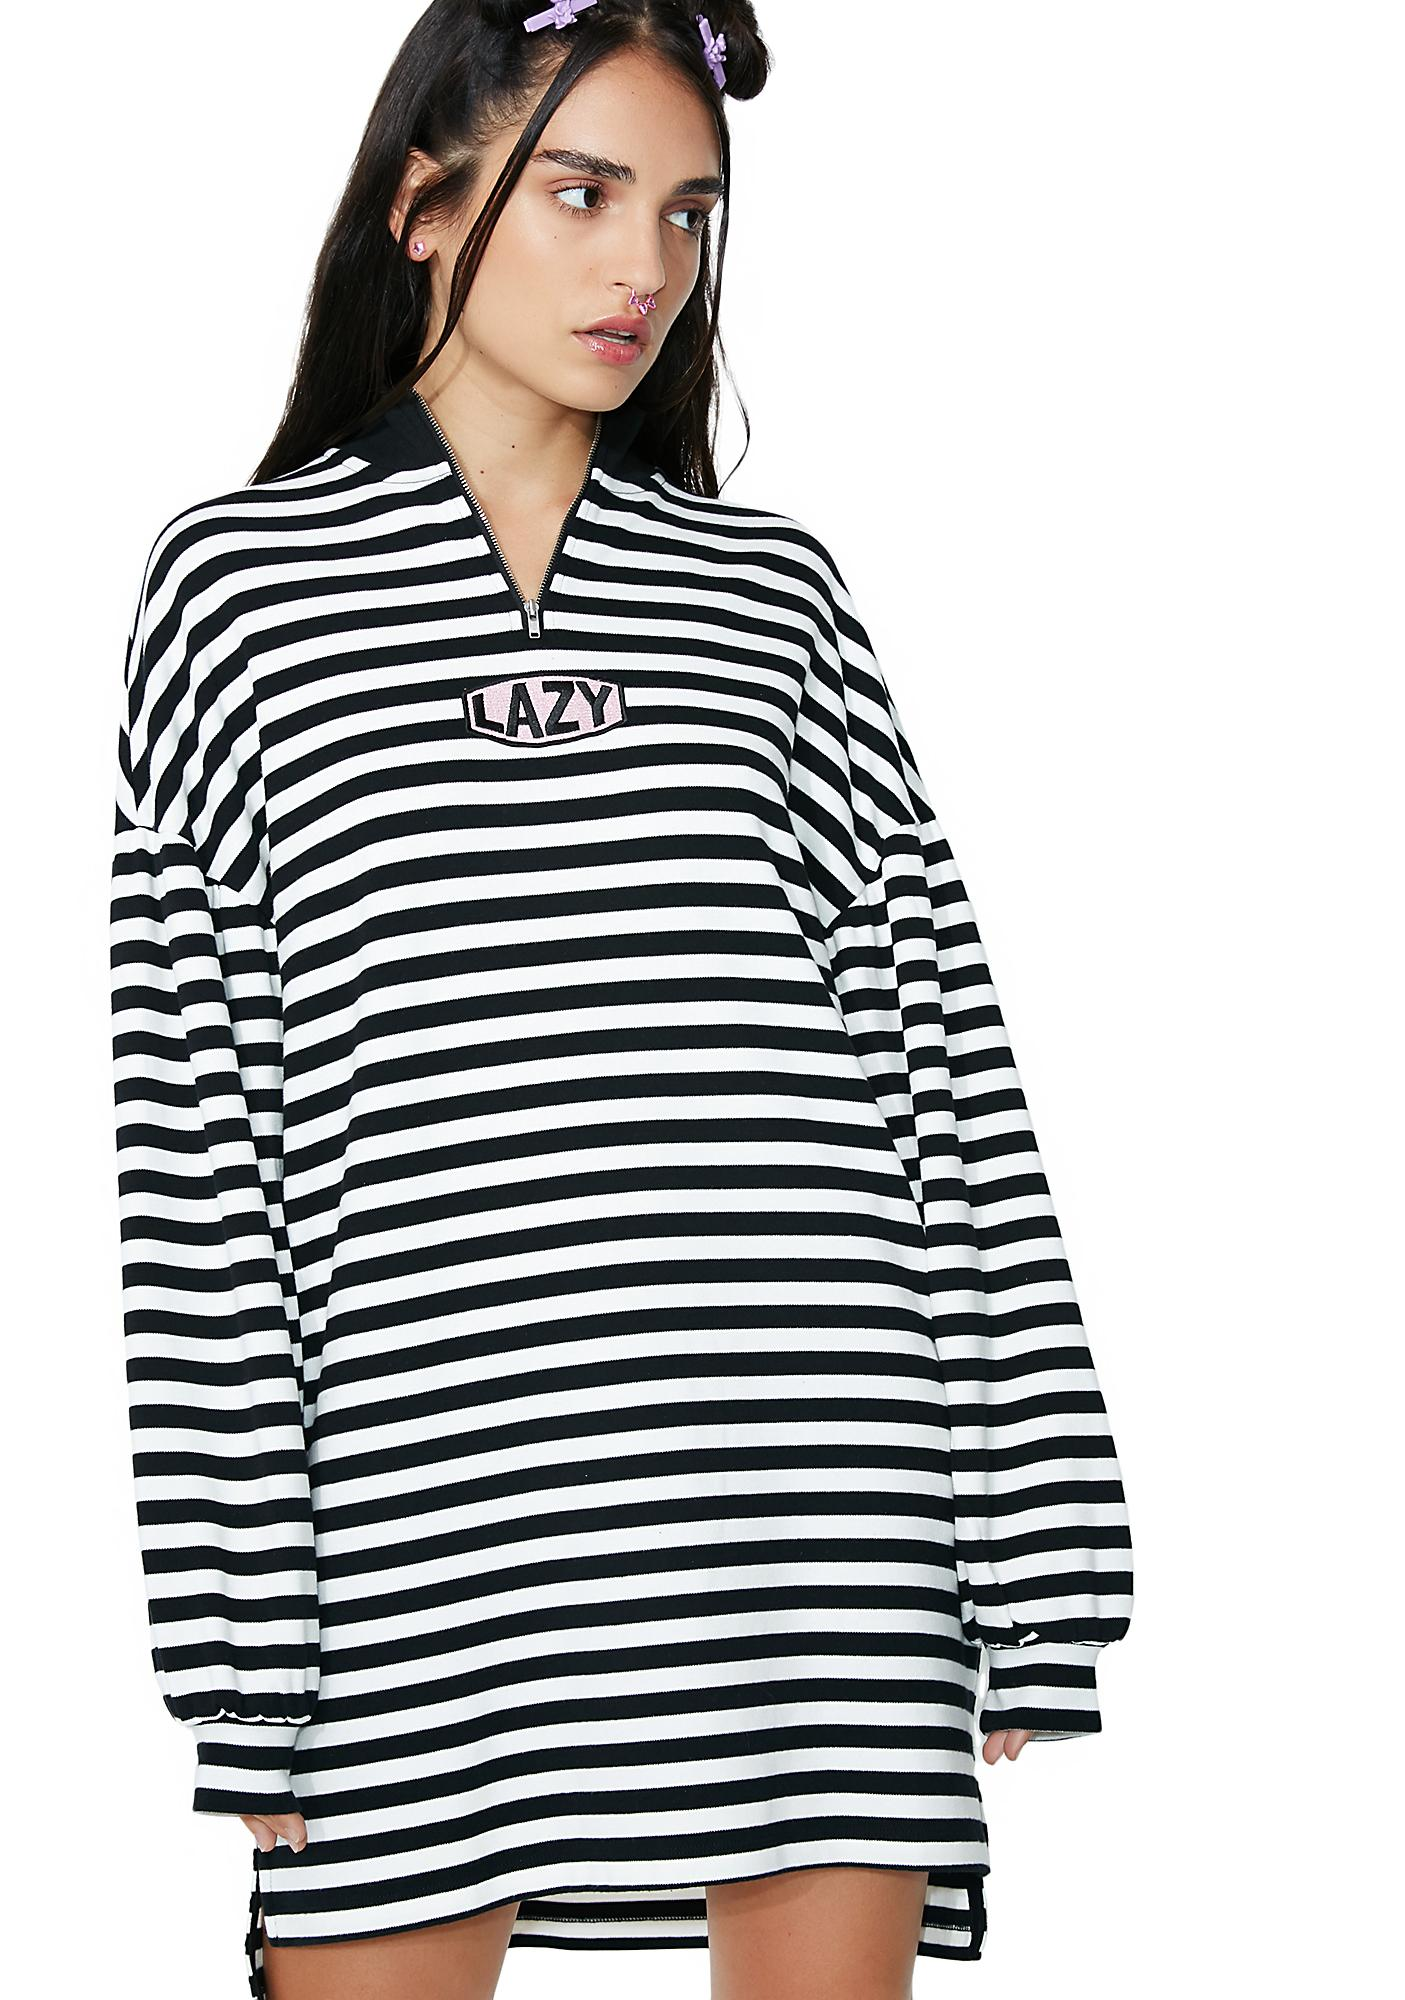 Lazy Oaf Zip Up Stripey Sweatshirt